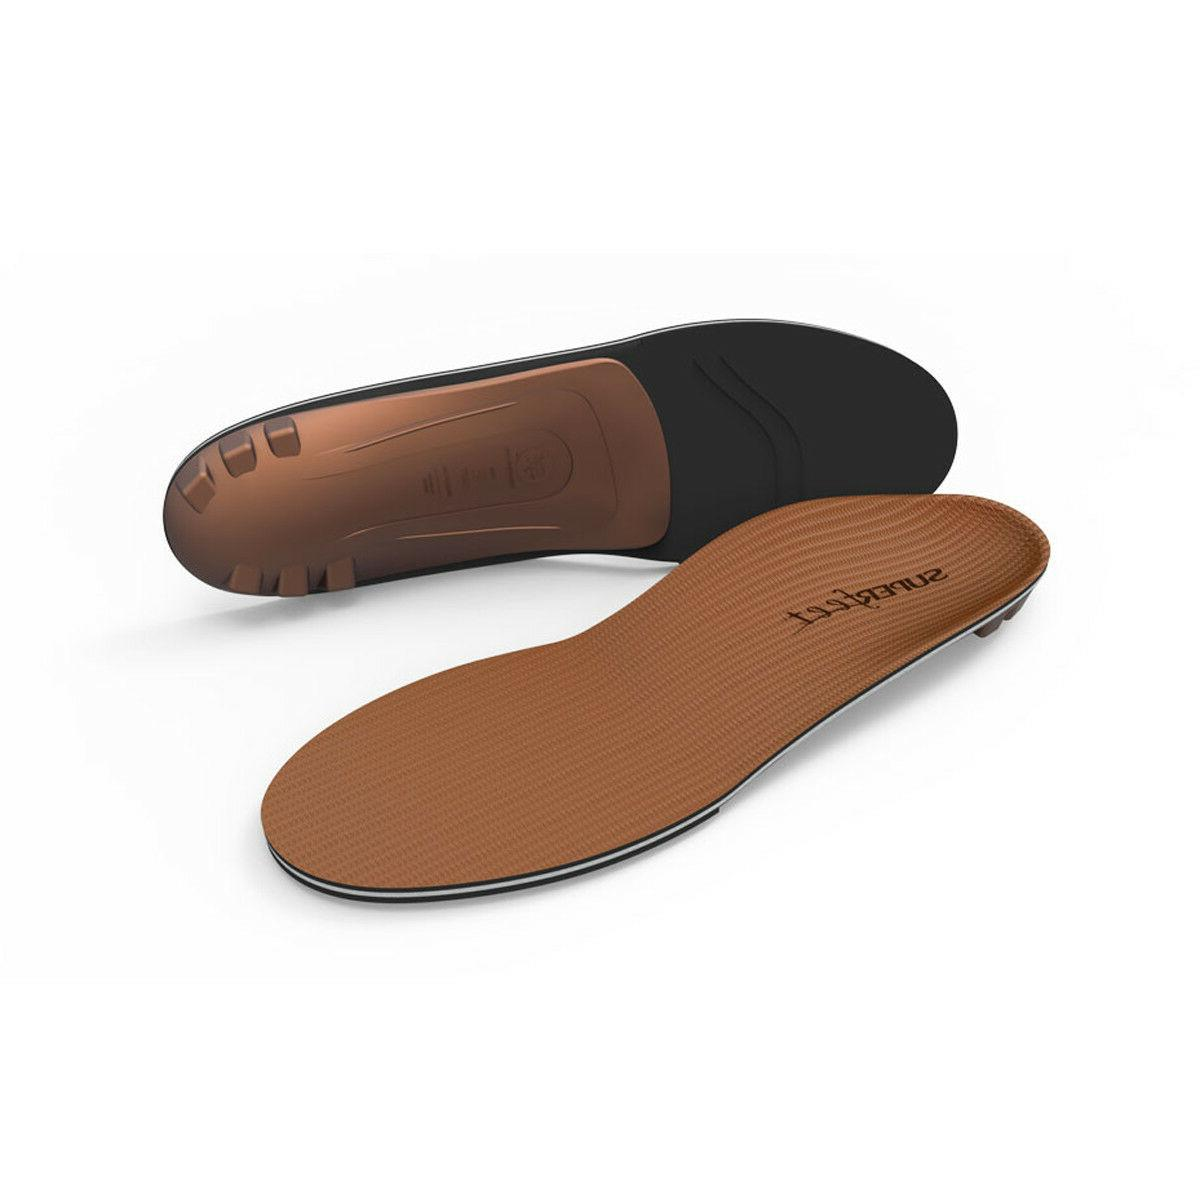 New Superfeet COPPER Arch Support Shoe Inserts Insoles Sizes